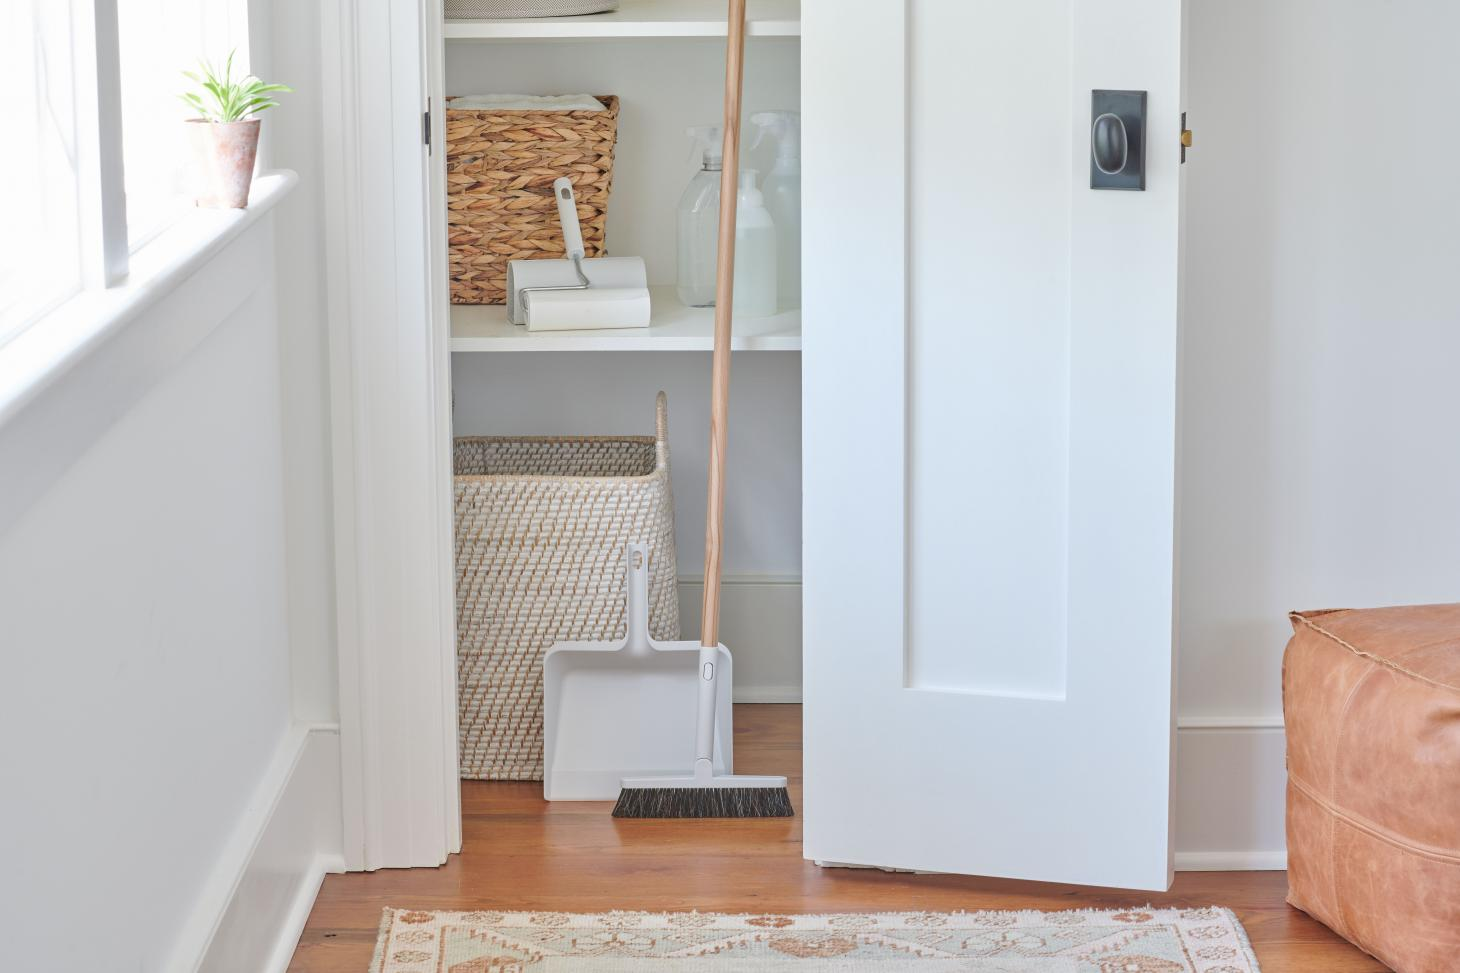 A white wooden closet with a broom and dustpan, lint roller and spray bottles, part of the Muji and Airbnb holiday home essentials kit